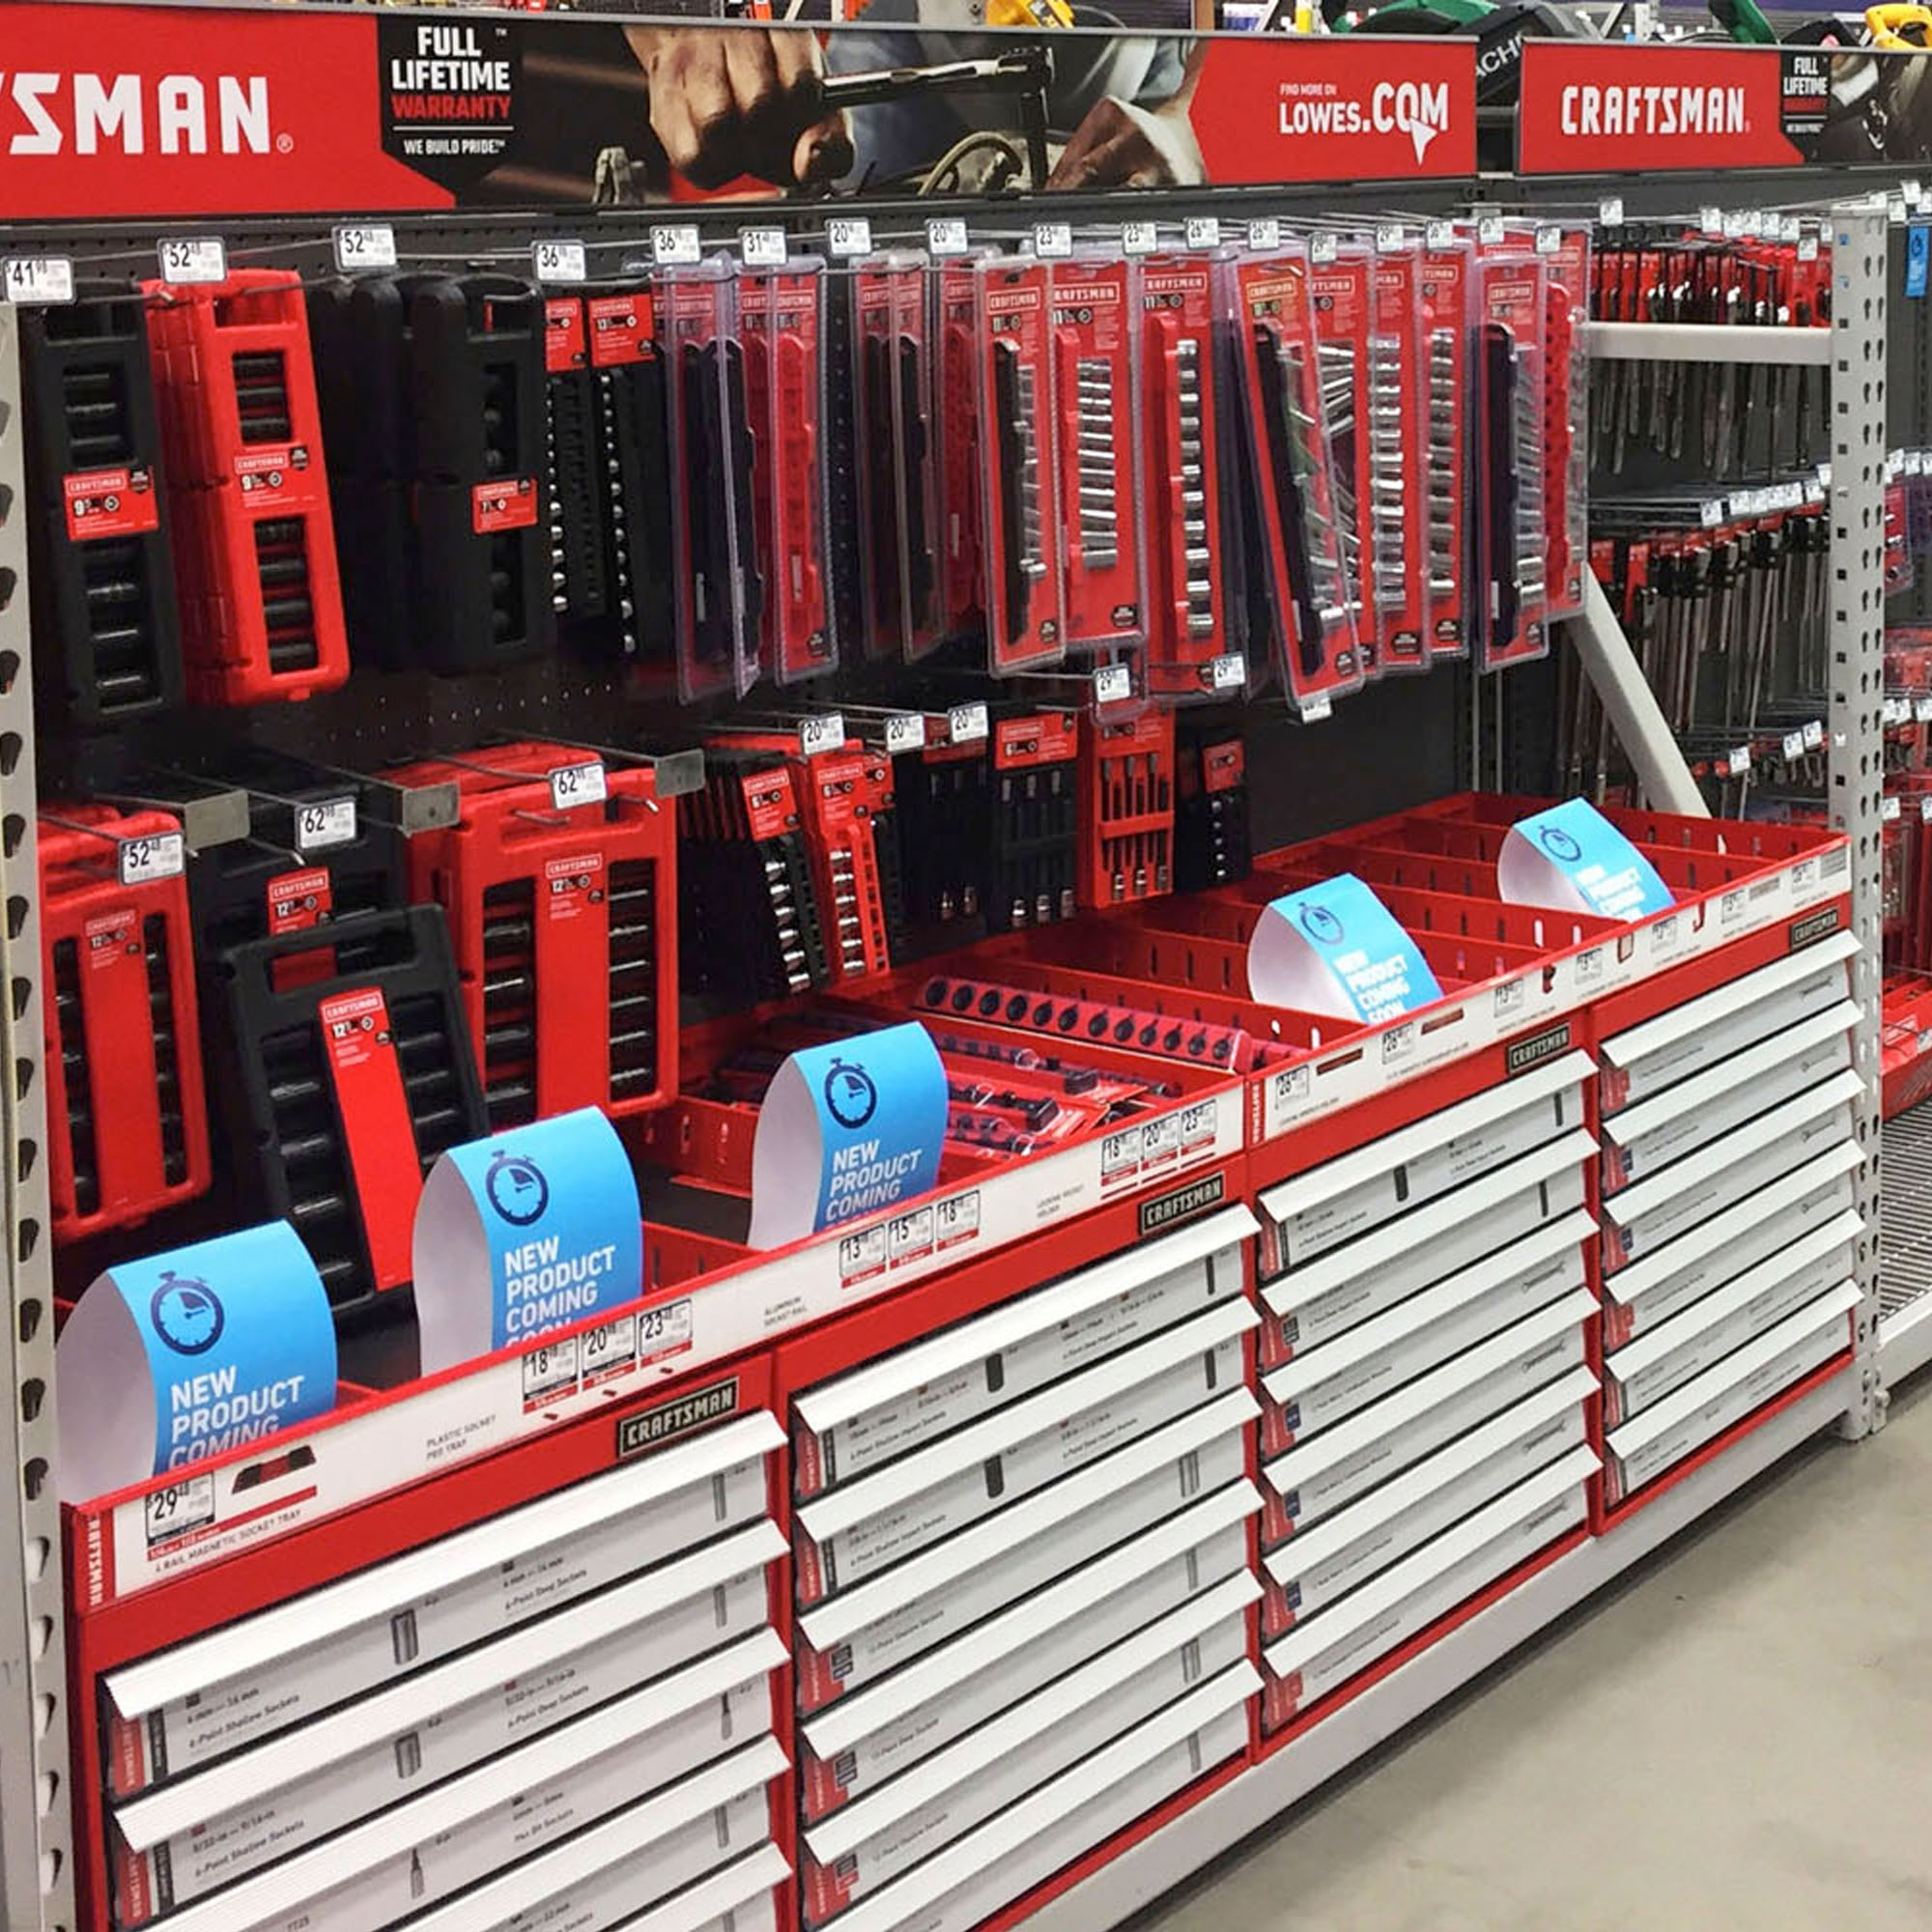 Craftsman - Retail Merchandising